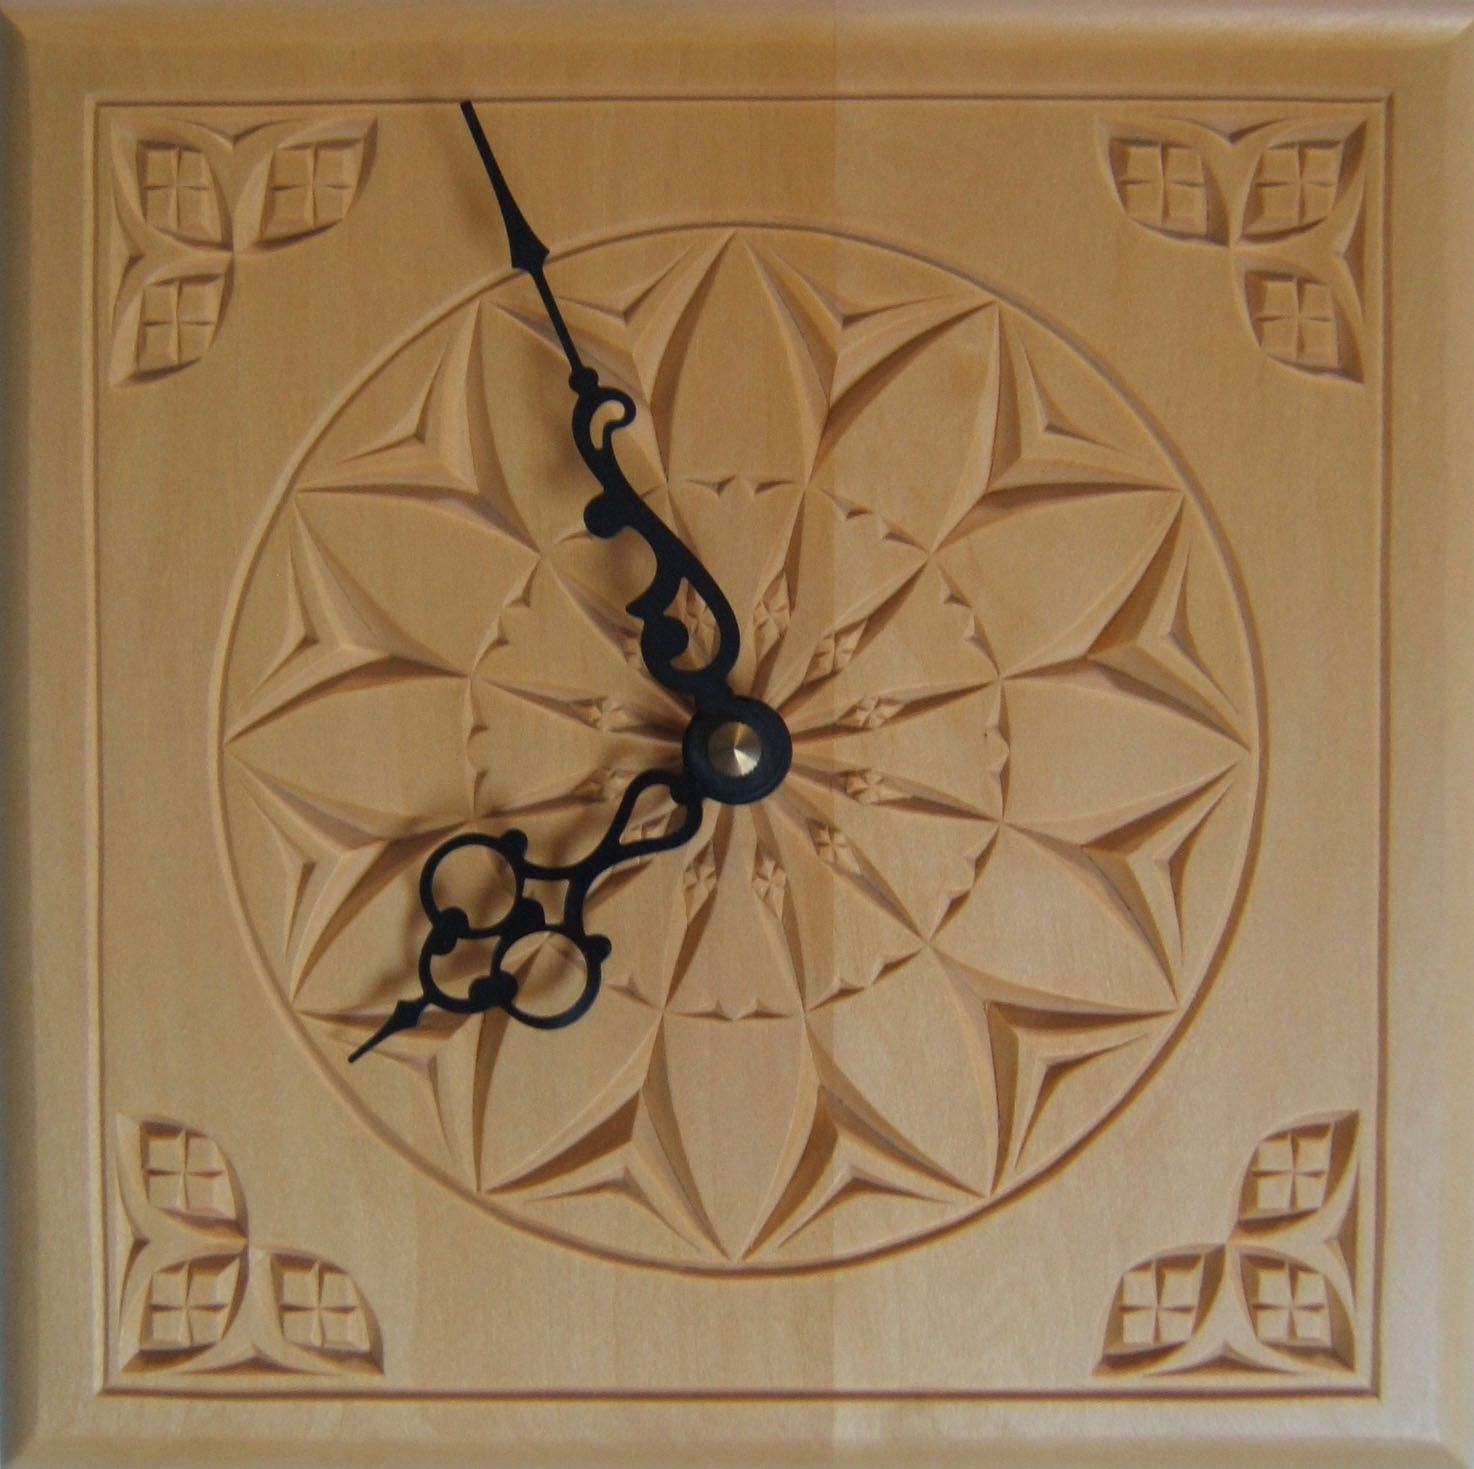 Easy+Wood+Carving+Patterns Wood Carving Wood Sculpture